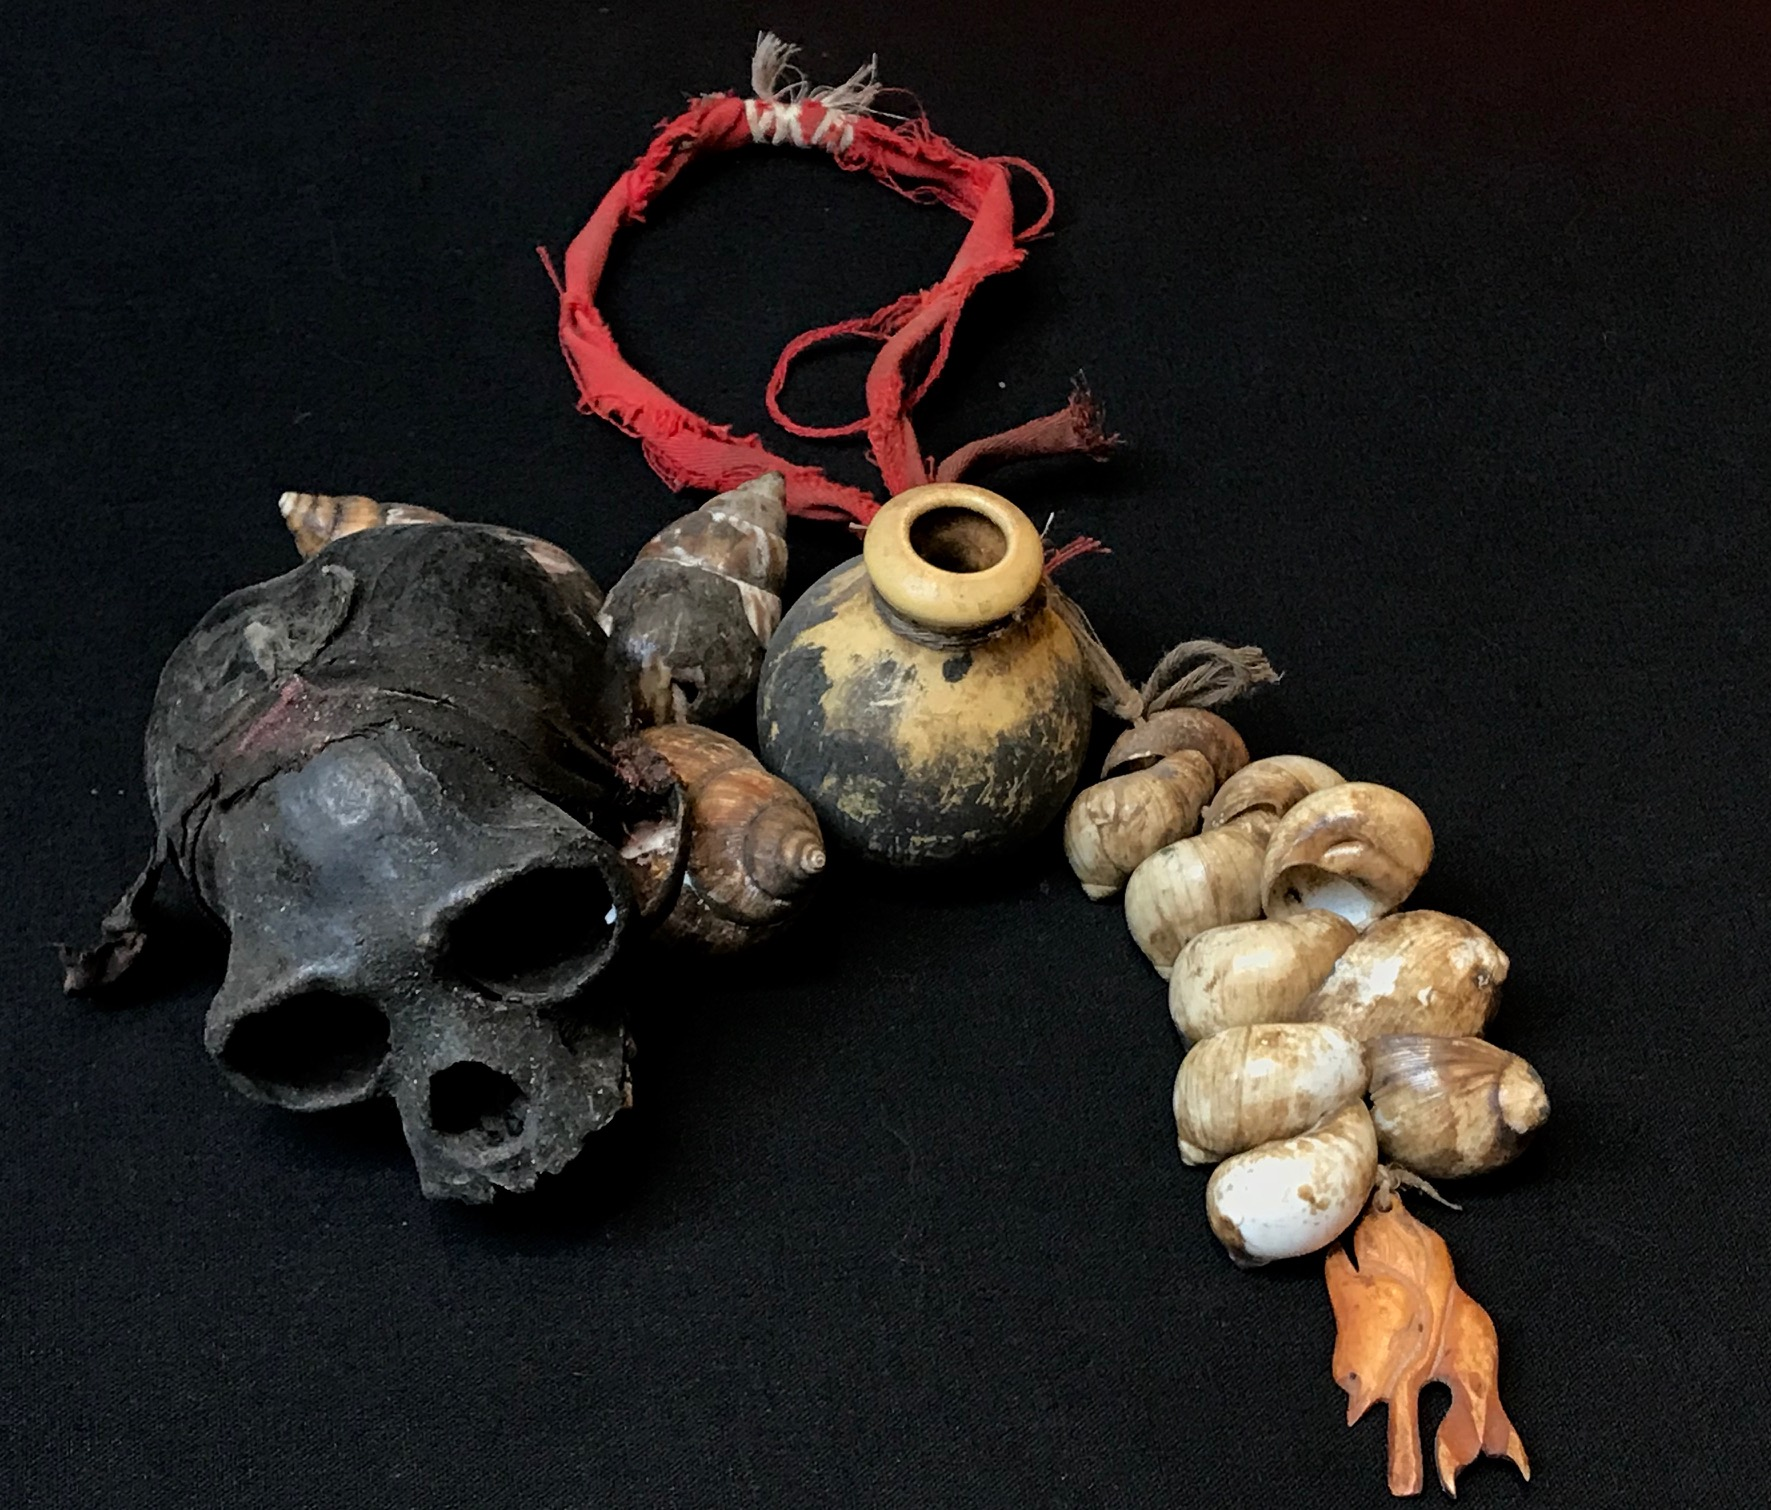 "Shaman's ritual dance rattle, Indonesia, Borneo, Dayak tribe, early 20th c., Monkey skull, sea shells, bone, ceramic beads, Shaken to scare away evil or harmful spirits, ~ 13"" x 5"""